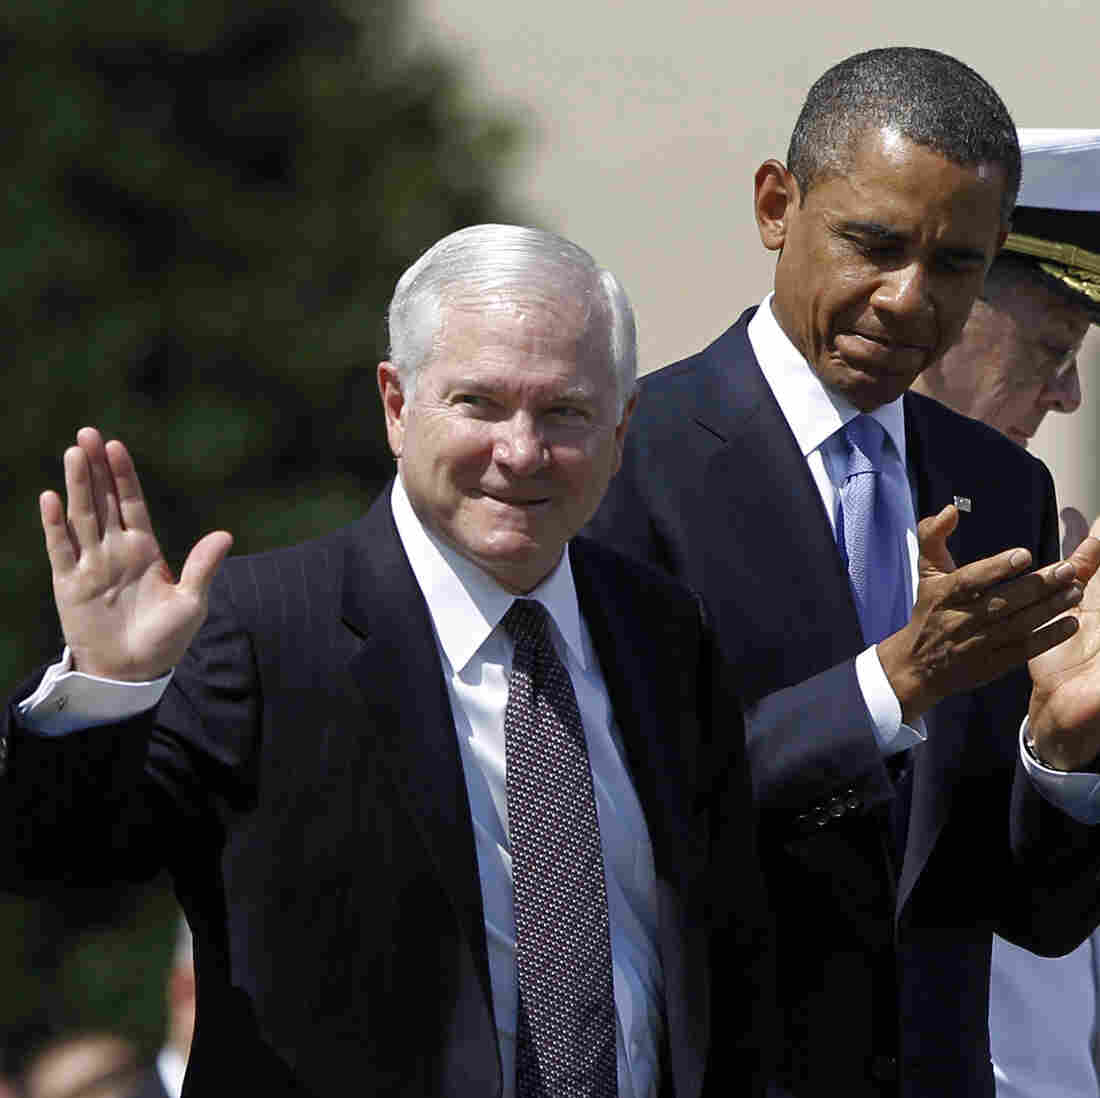 Gates Says His Points About Obama Have Been Mischaracterized